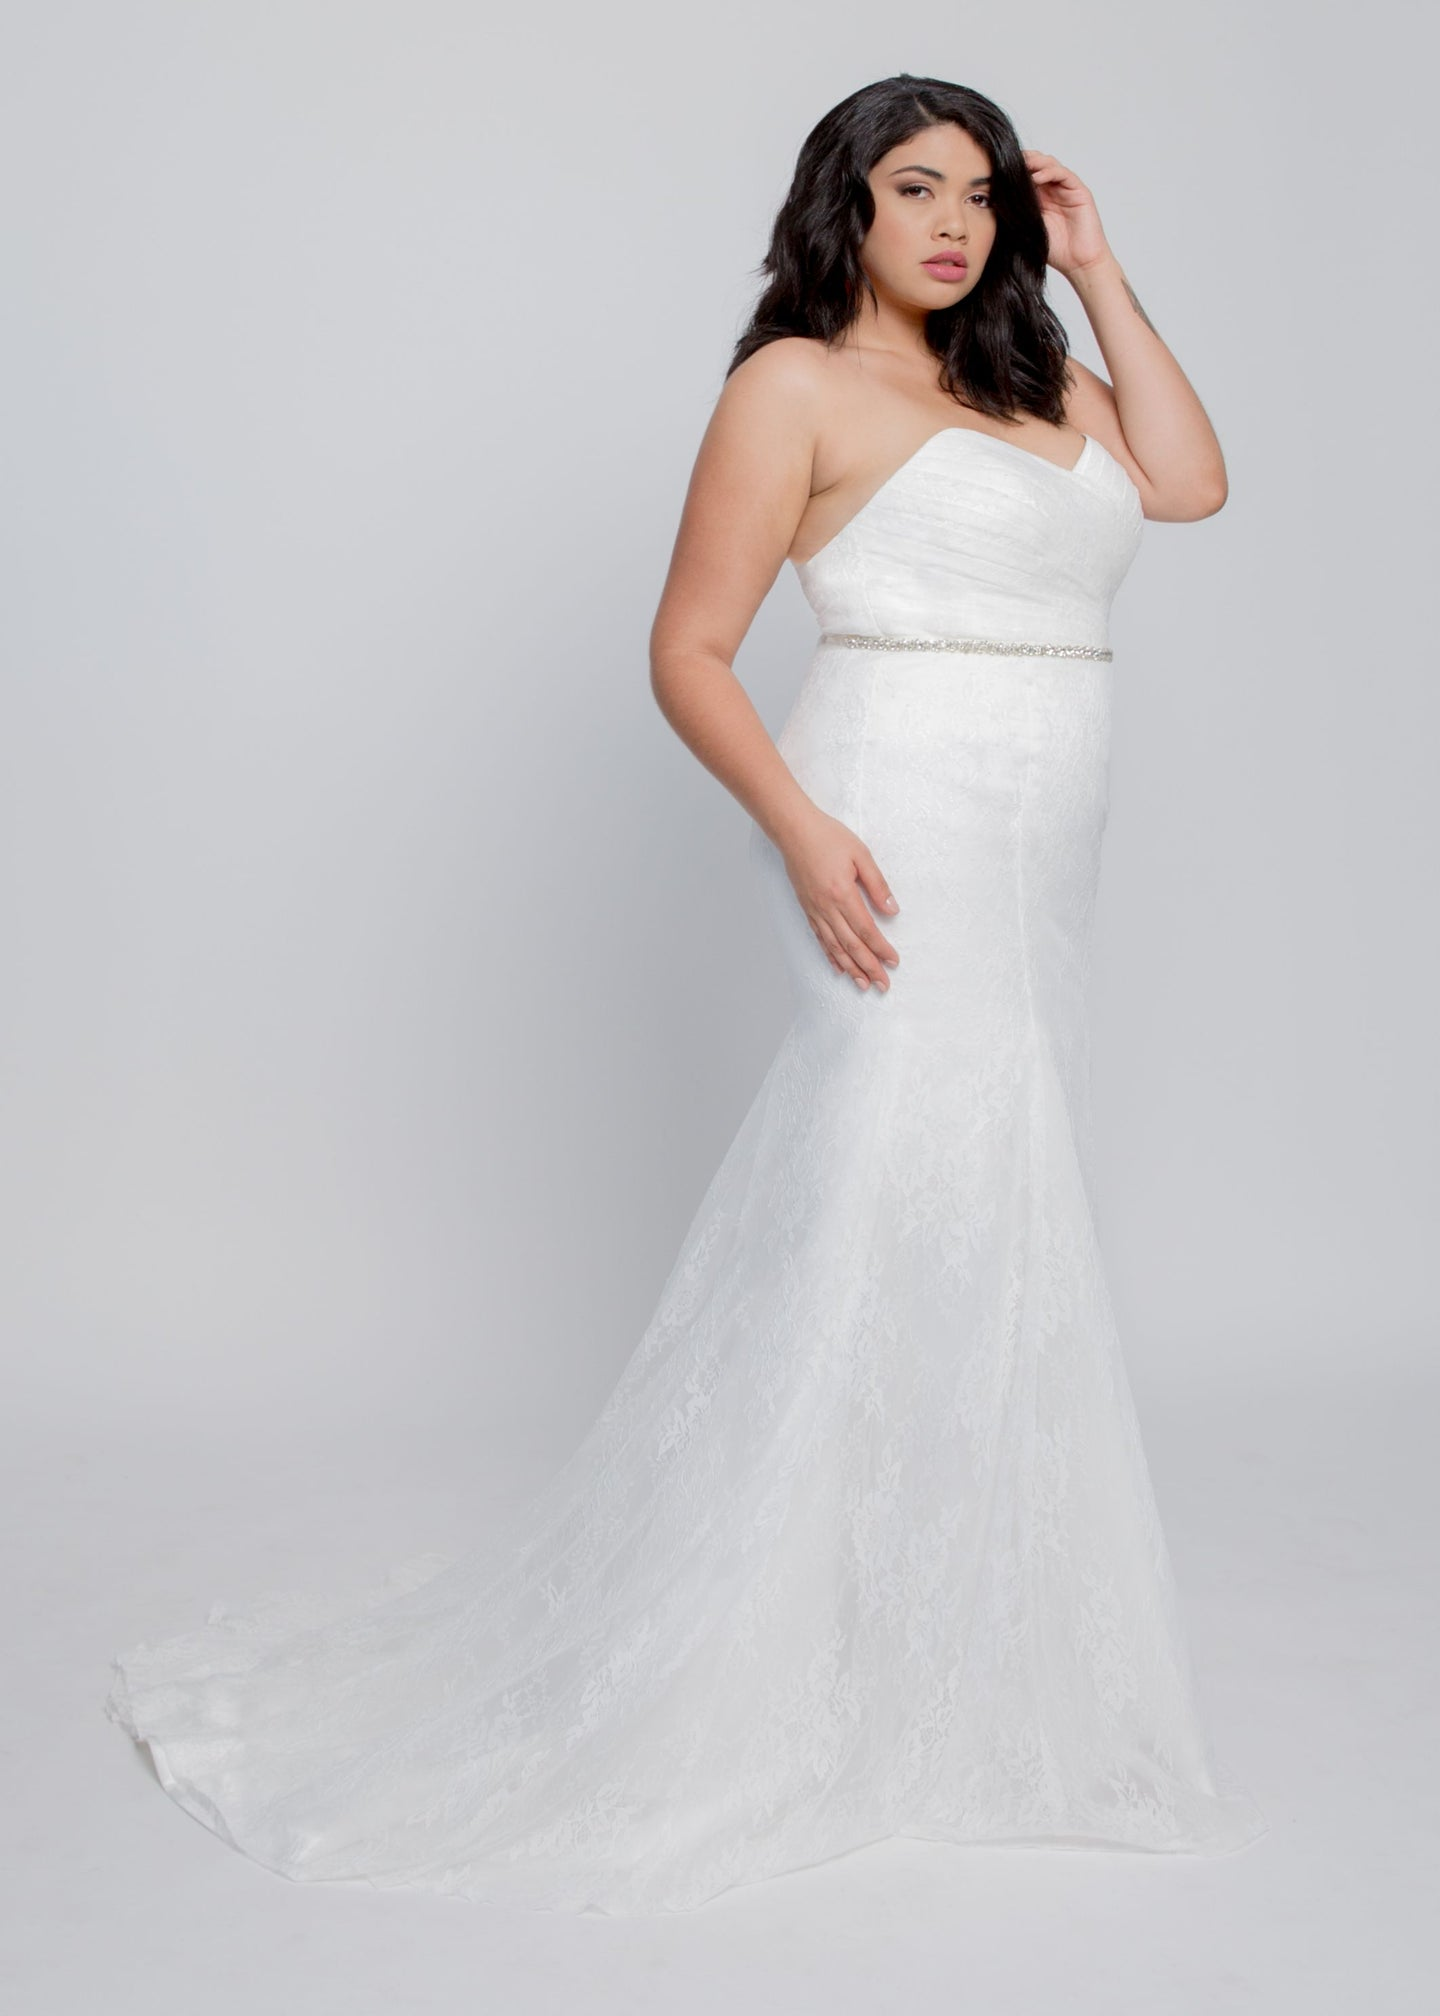 Gorgeous bridal gowns for all body shapes: plus size, curvy, or petite brides. Try on our wedding dresses at home. Size 0-30. Comfortable. Convenient. Fun. Lace or satin. Mermaid or A-line. The Blaire gown combines an elegant plated lace bustier with a sweetheart neckline and figure-flattering trumpet skirt. Glide into your wedding day in lovely lace hugging your body with an elegant chapel train. Customize with detachable lace sleeves to added romance.